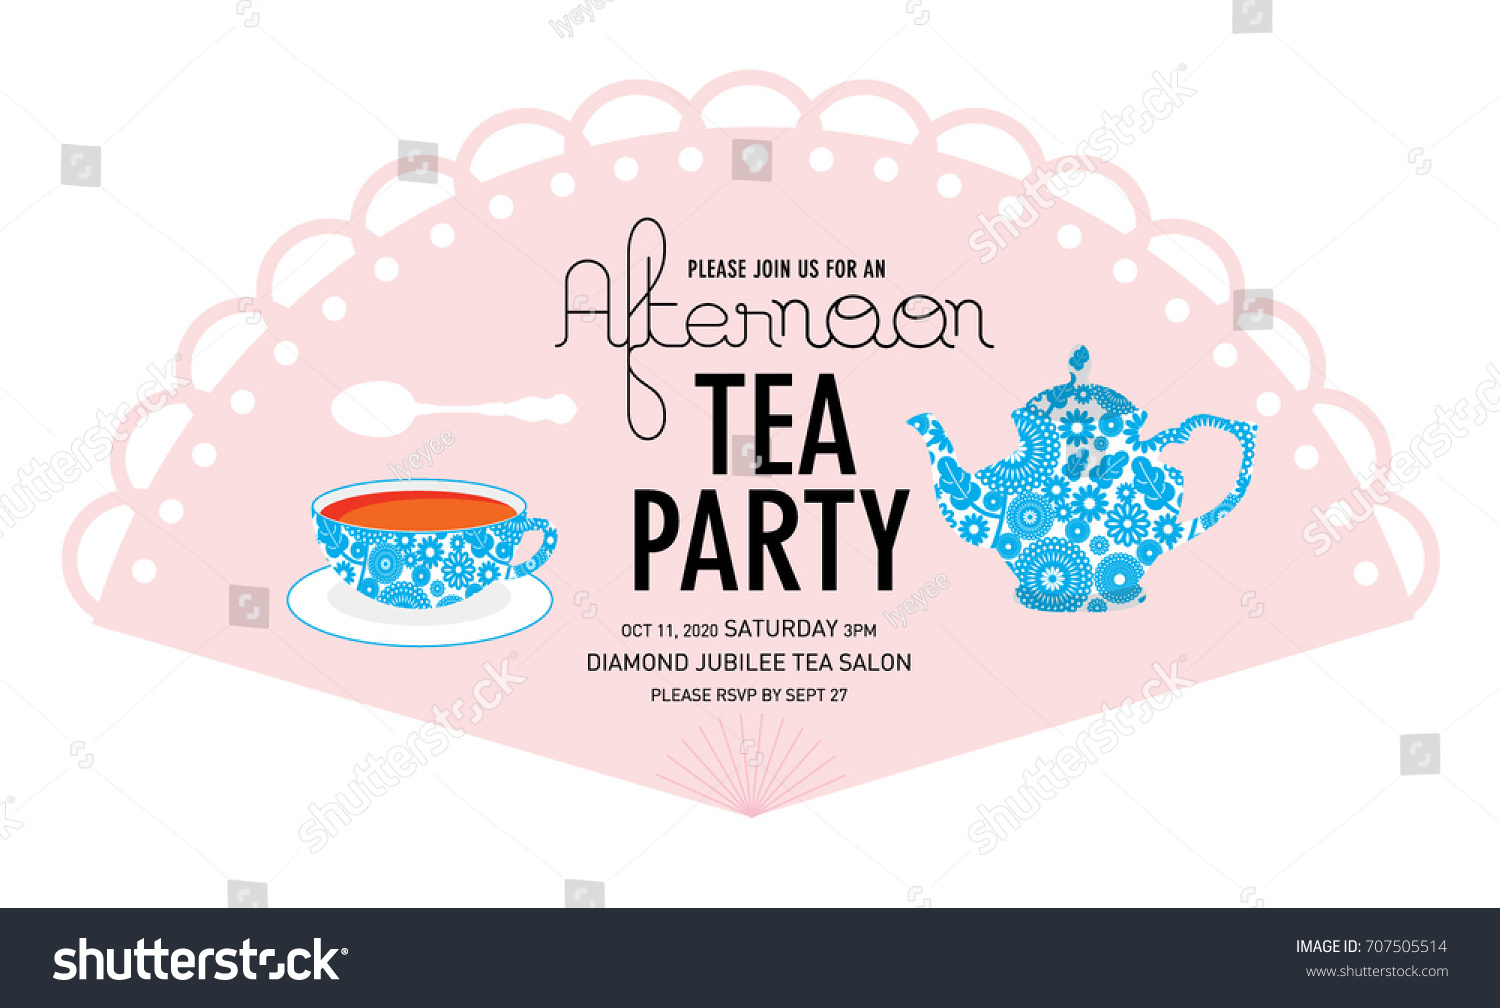 Fan Tea Party Invitation Card Template Vector Illustration